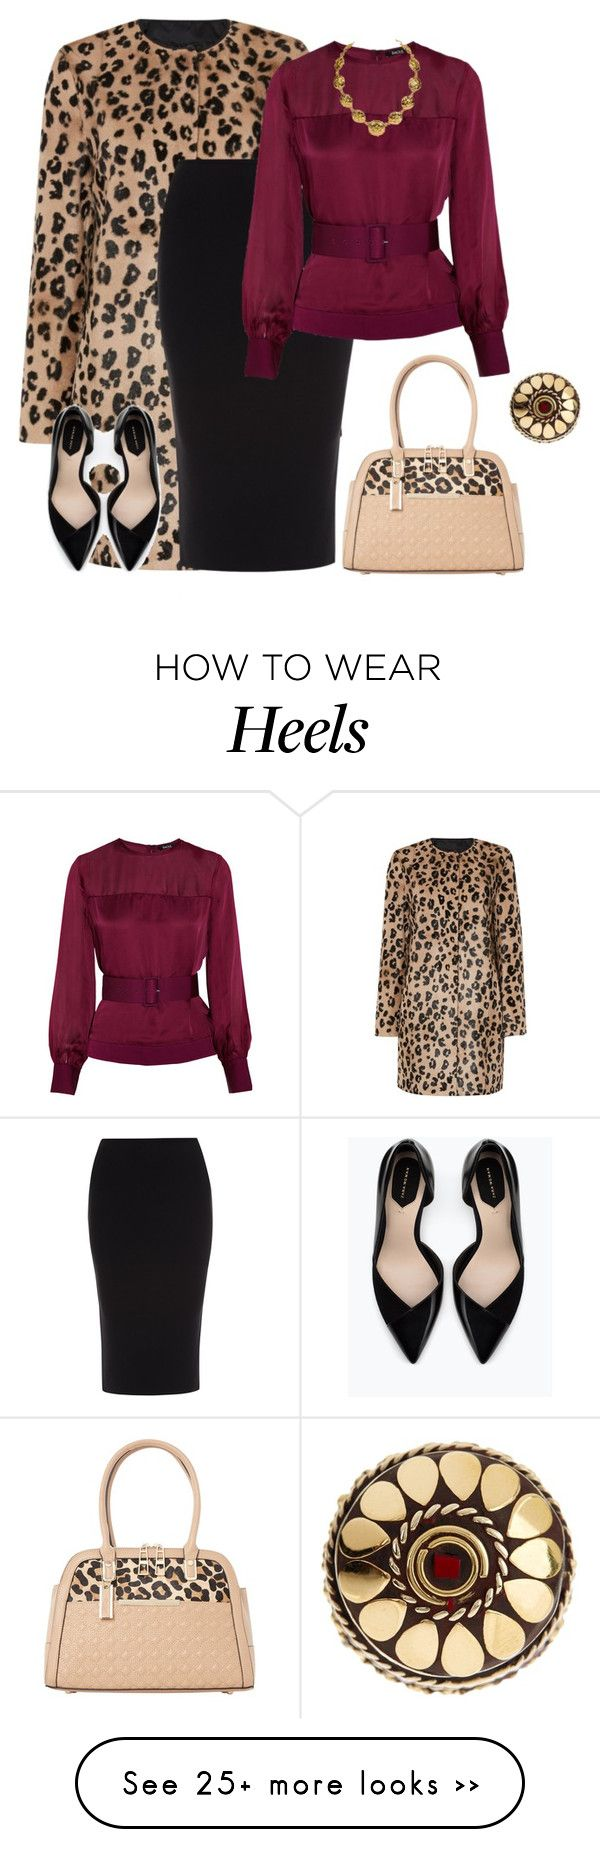 """outfit  2414"" by natalyag on Polyvore featuring MaxMara, Roland Mouret, Raoul, Zara, Dune and Rituals"